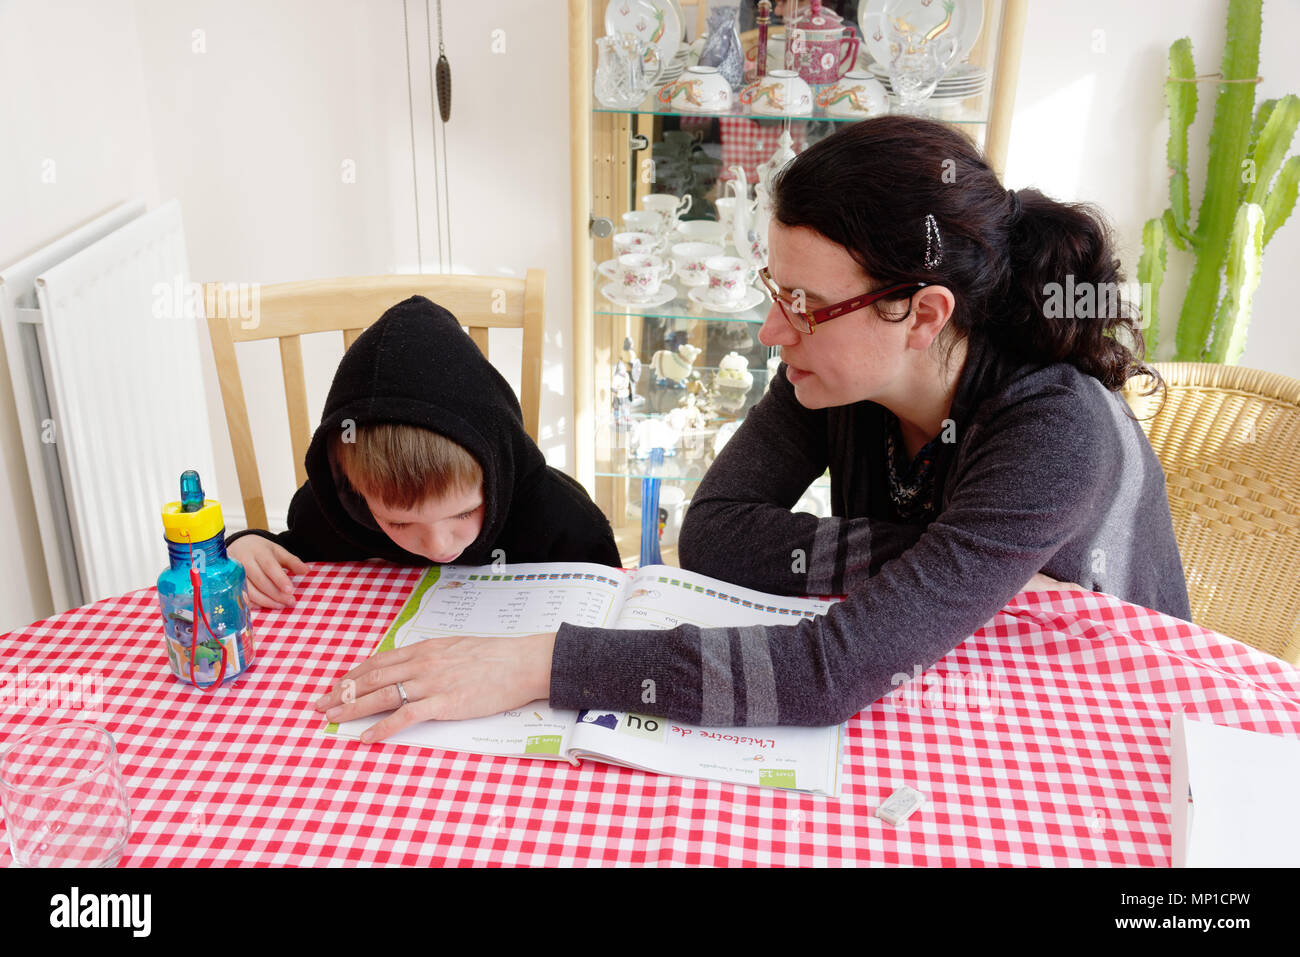 A mother teaching her son (5yrs old) to read - Stock Image